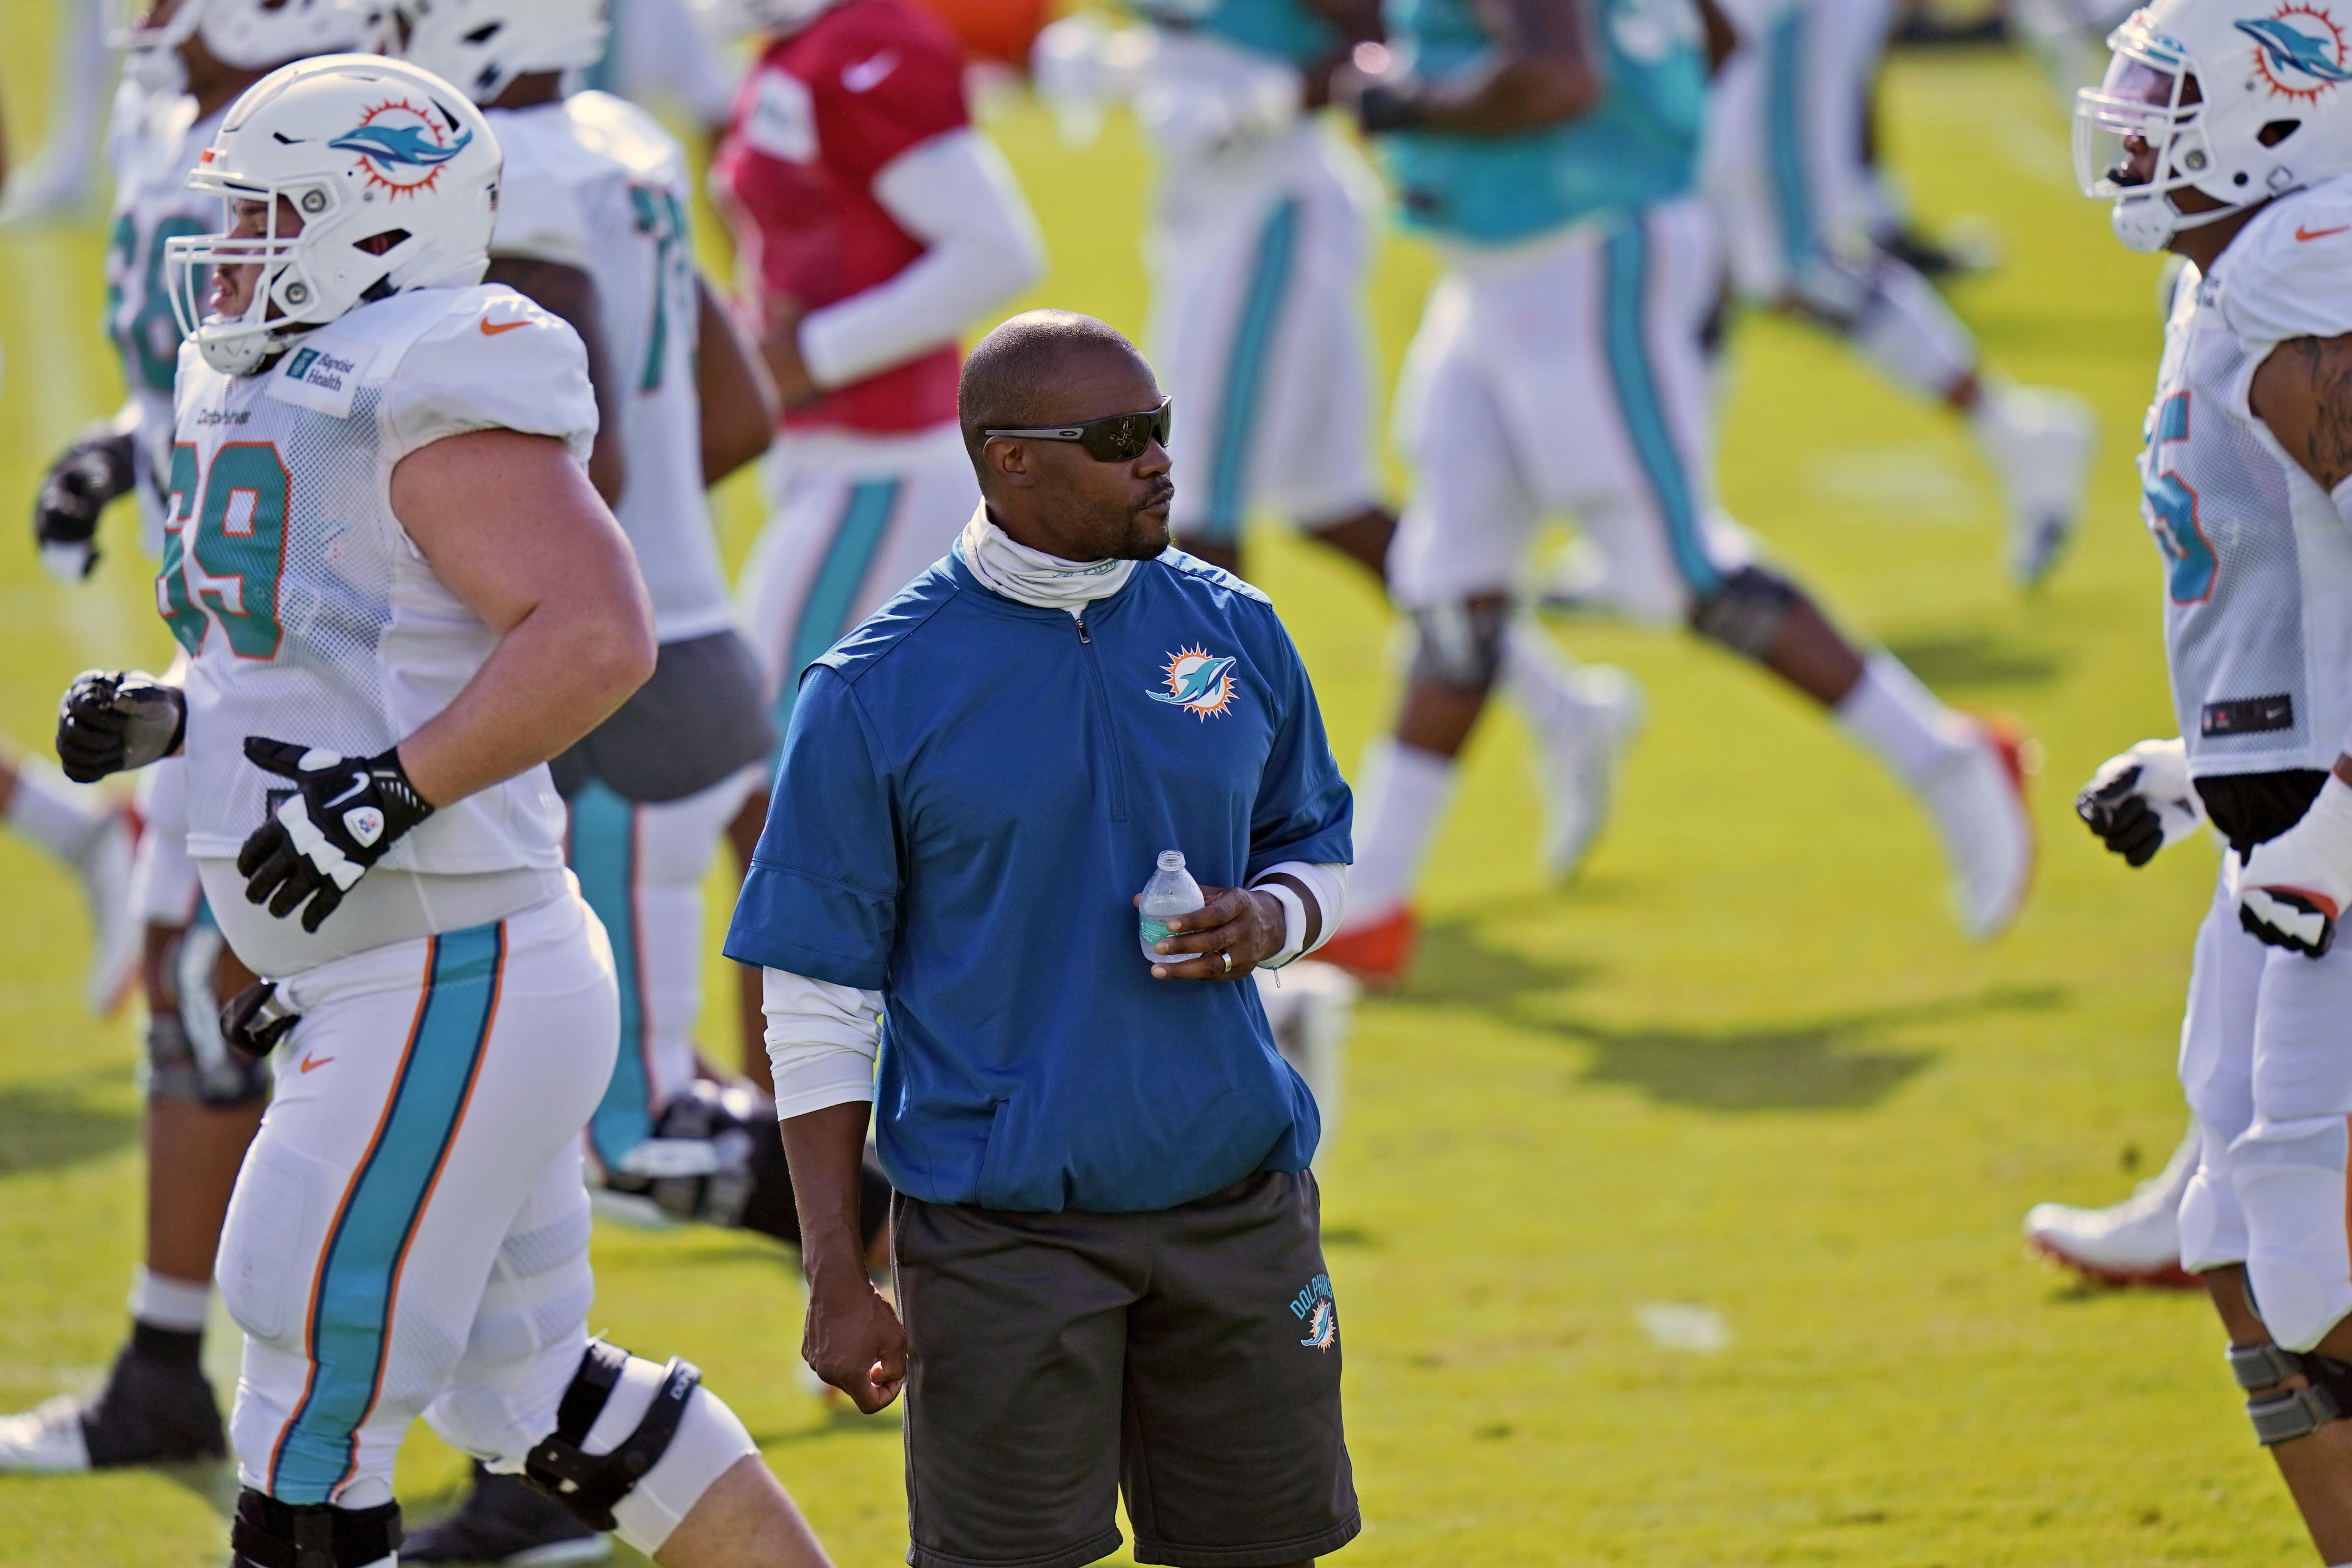 FILE - In this Aug. 21, 2020, file photo, Miami Dolphins head coach Brian Flores watches practice at the NFL football team's training facility in Davie, Fla. The Dolphins roster appears significantly upgraded by the draft and free agency, but the coronavirus pandemic curtailed offseason training. As a result, the Dolphins' 2020 season might be similar to 2019, when they were much better in December than in September. (AP Photo/Lynne Sladky, File)